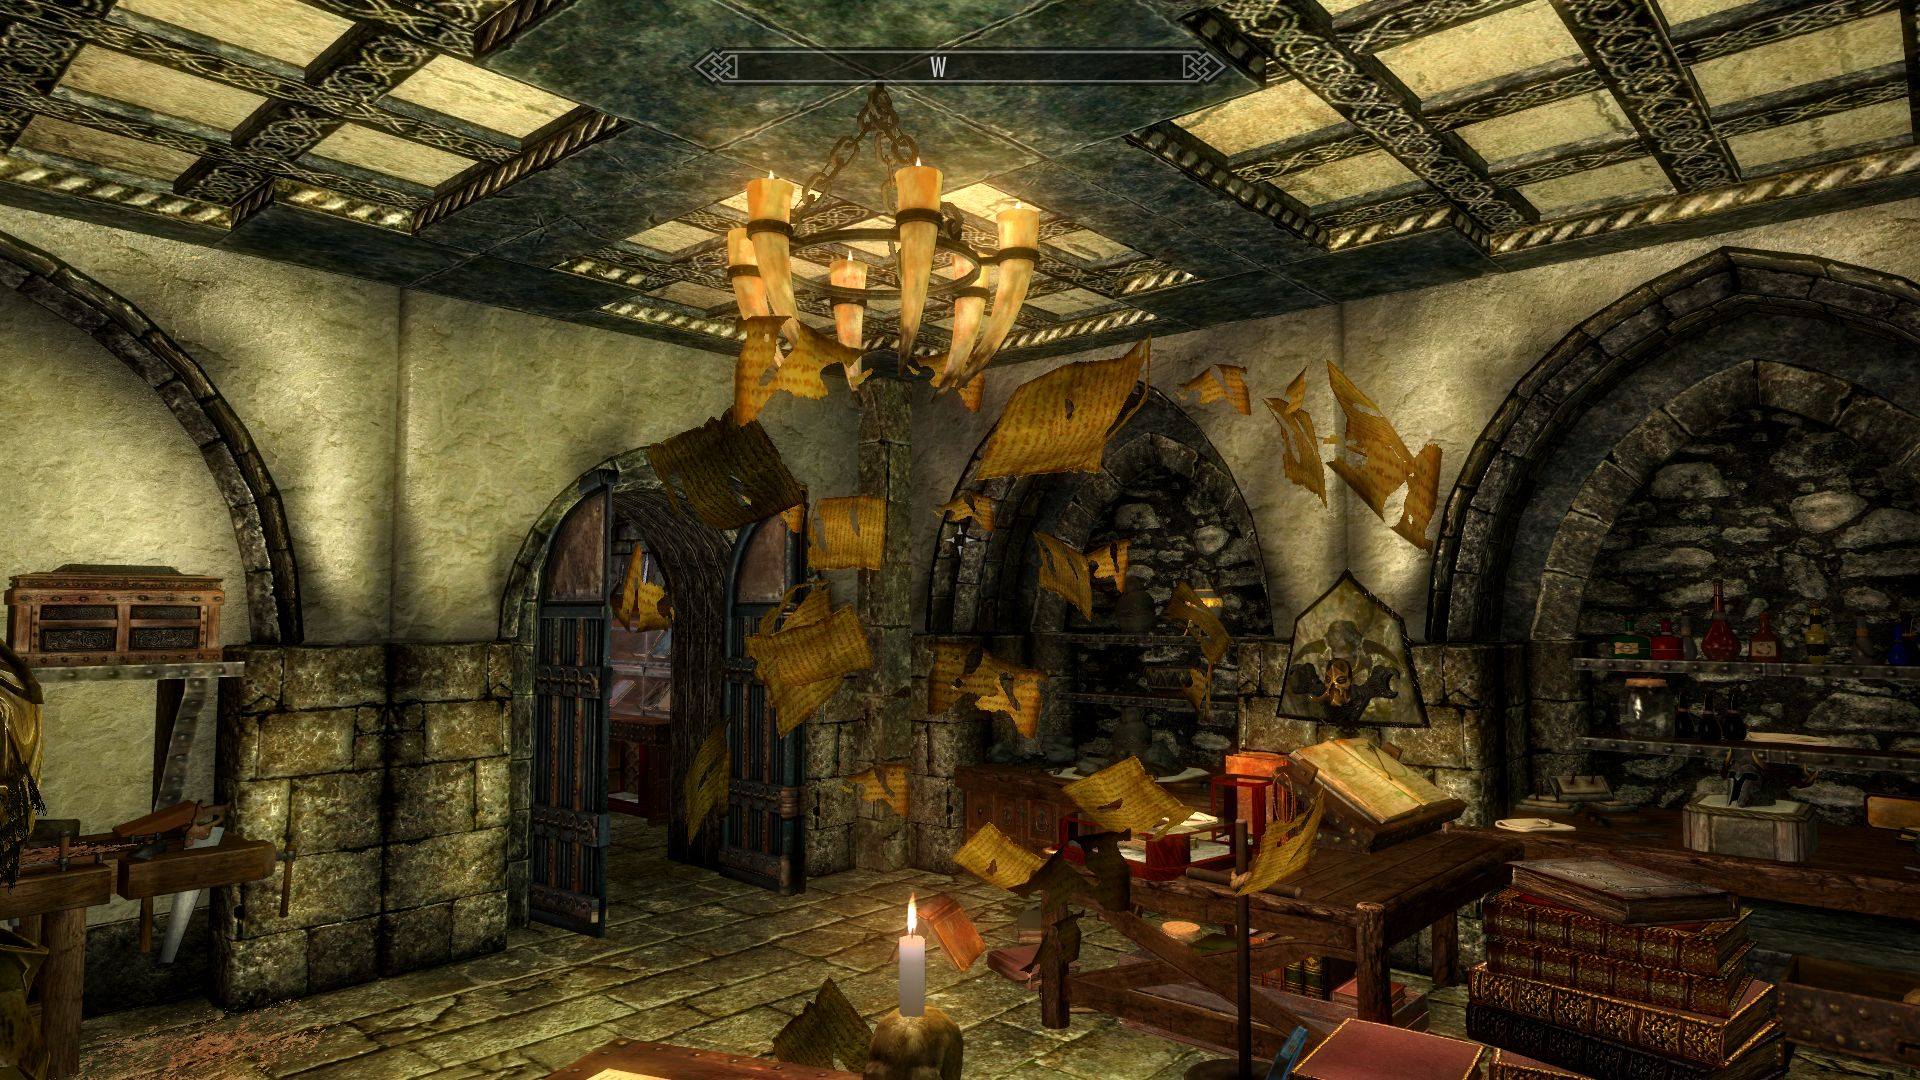 Category:Missing information | Legacy of the Dragonborn